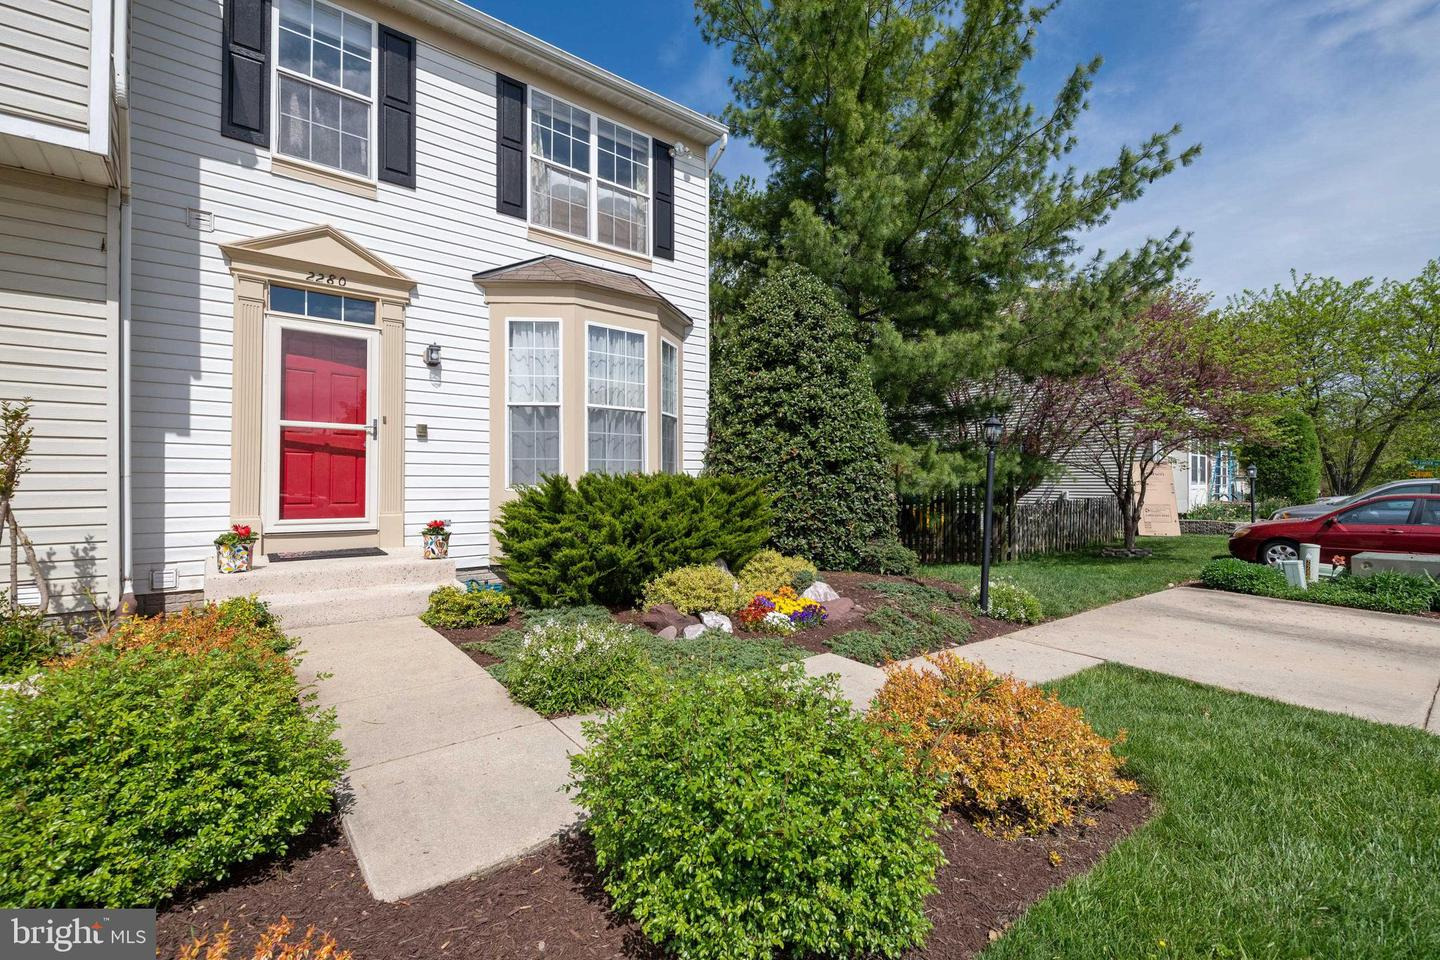 2280 INDIAN SUMMER DR, ODENTON, Maryland 21113, 3 Bedrooms Bedrooms, ,4 BathroomsBathrooms,Townhouse,For Sale,2280 INDIAN SUMMER DR,MDAA466800